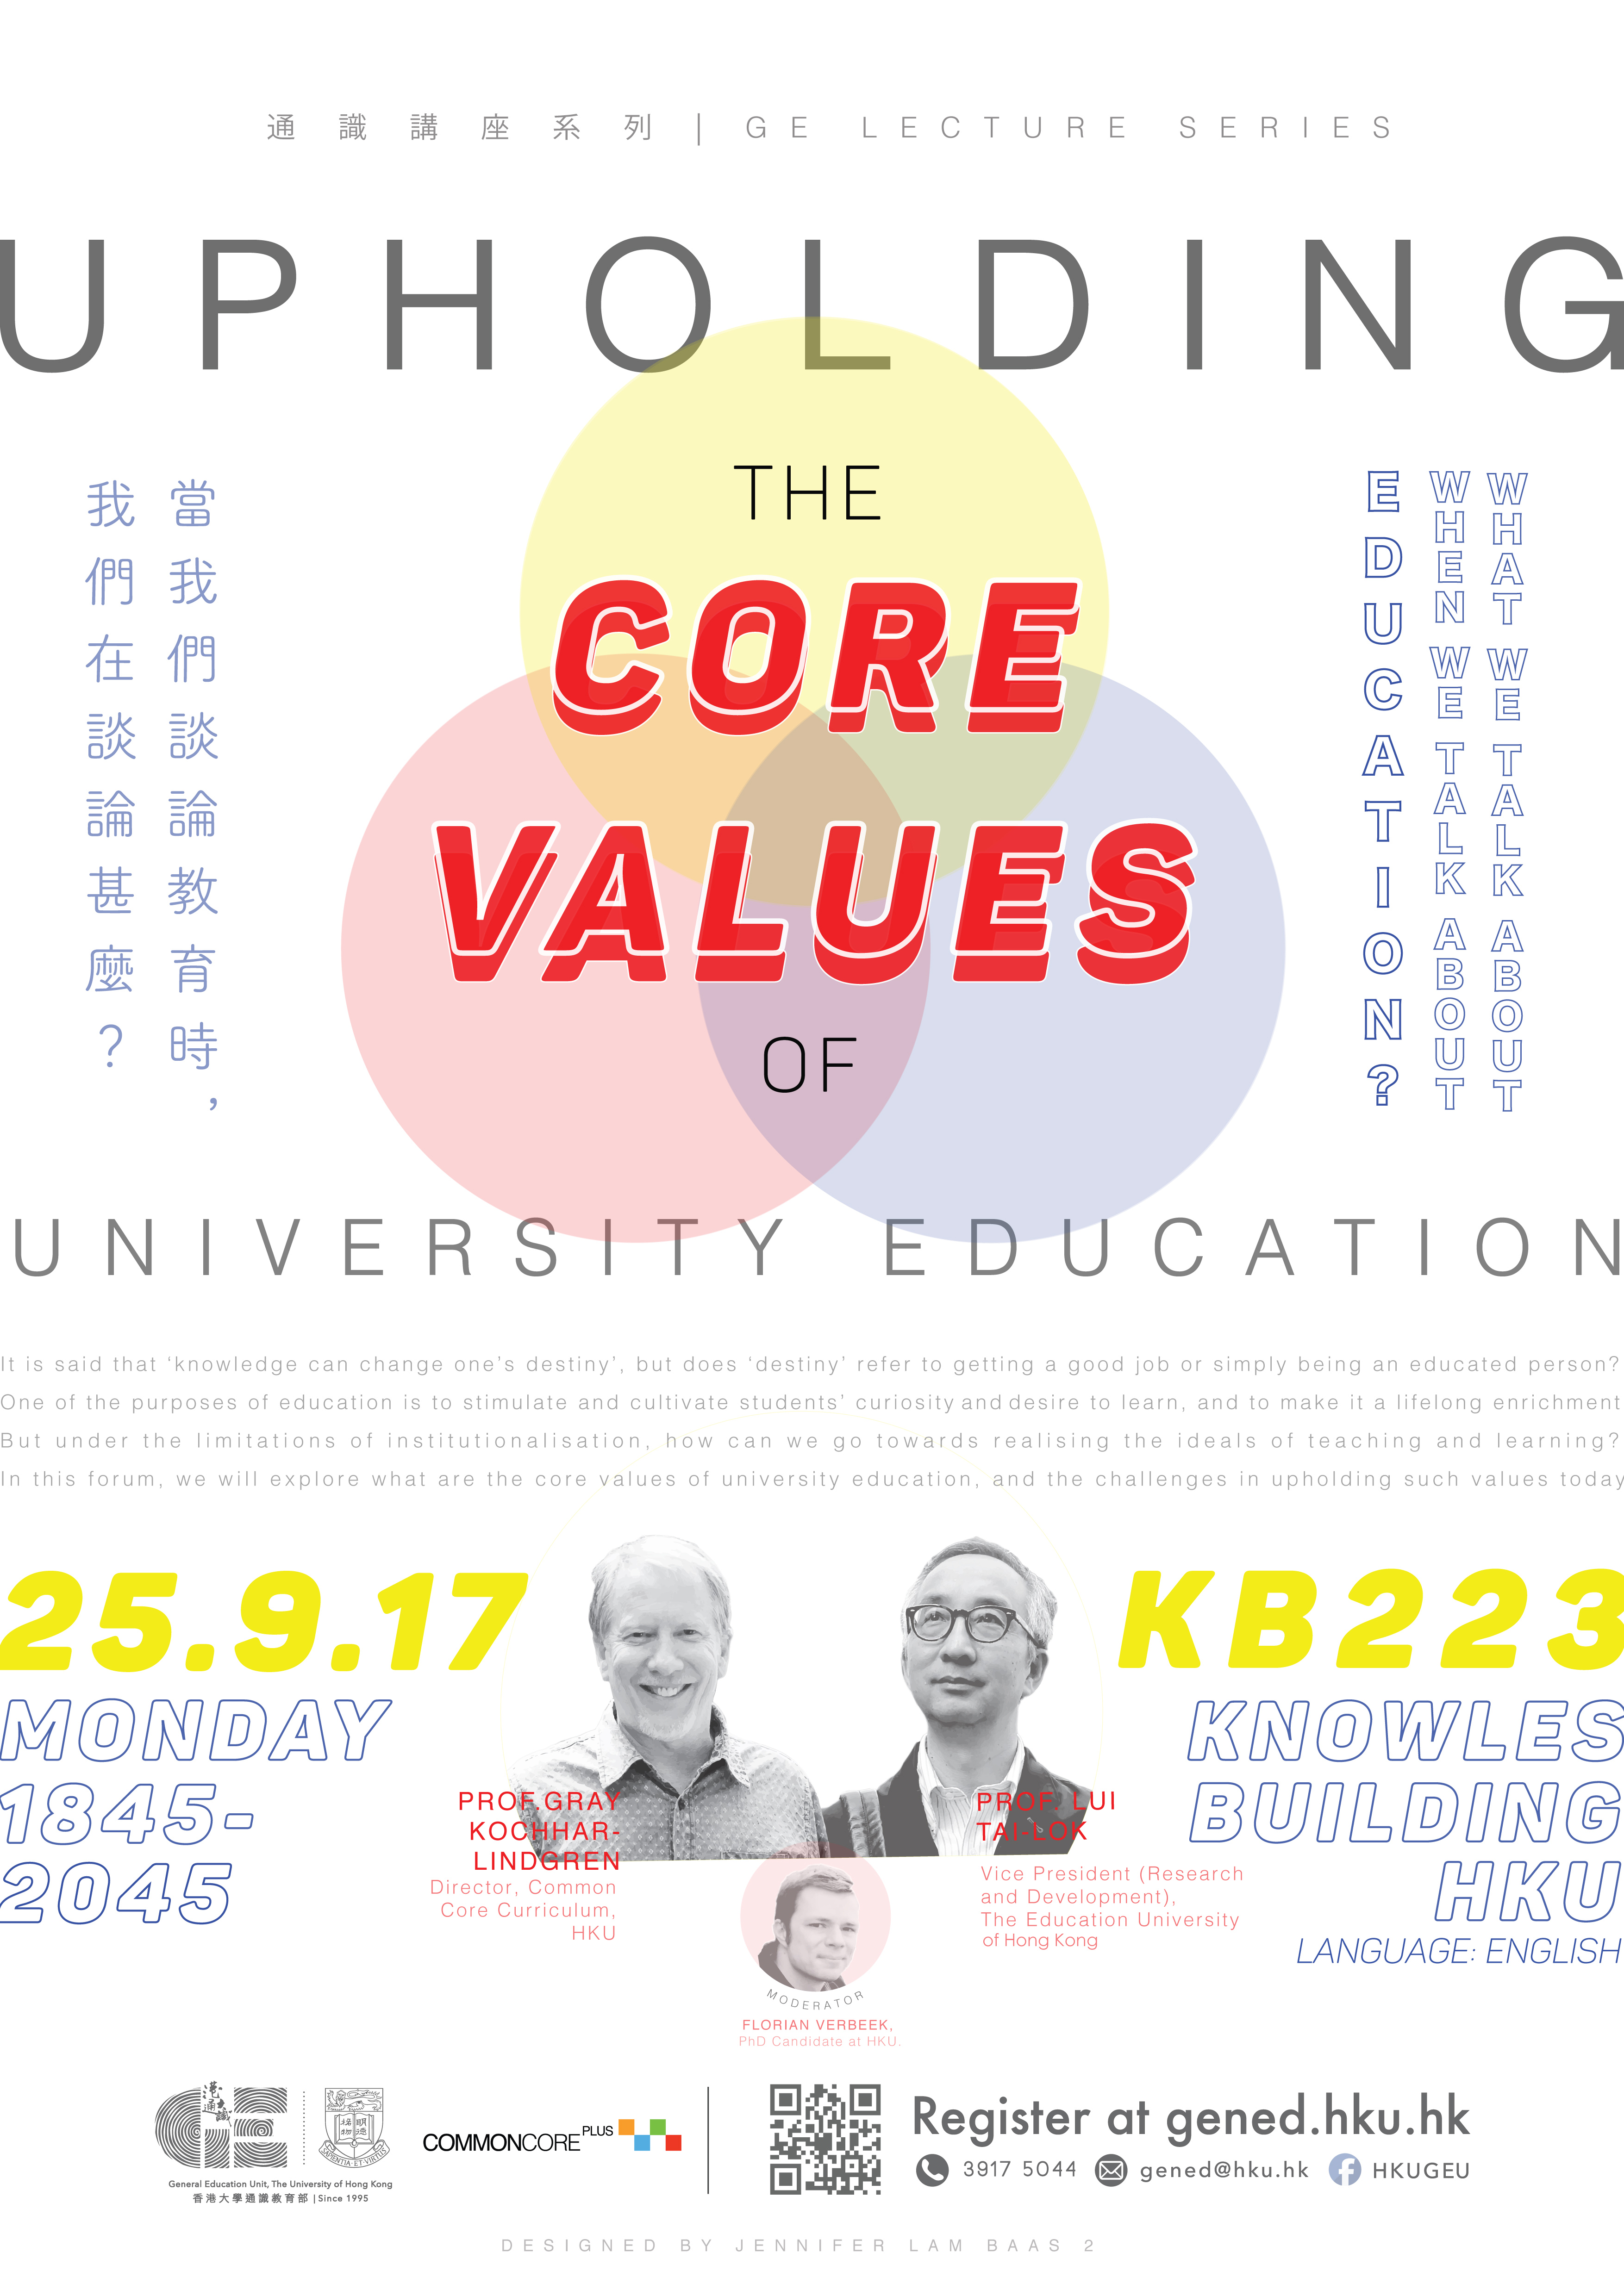 Upholding the Core Values of University Education